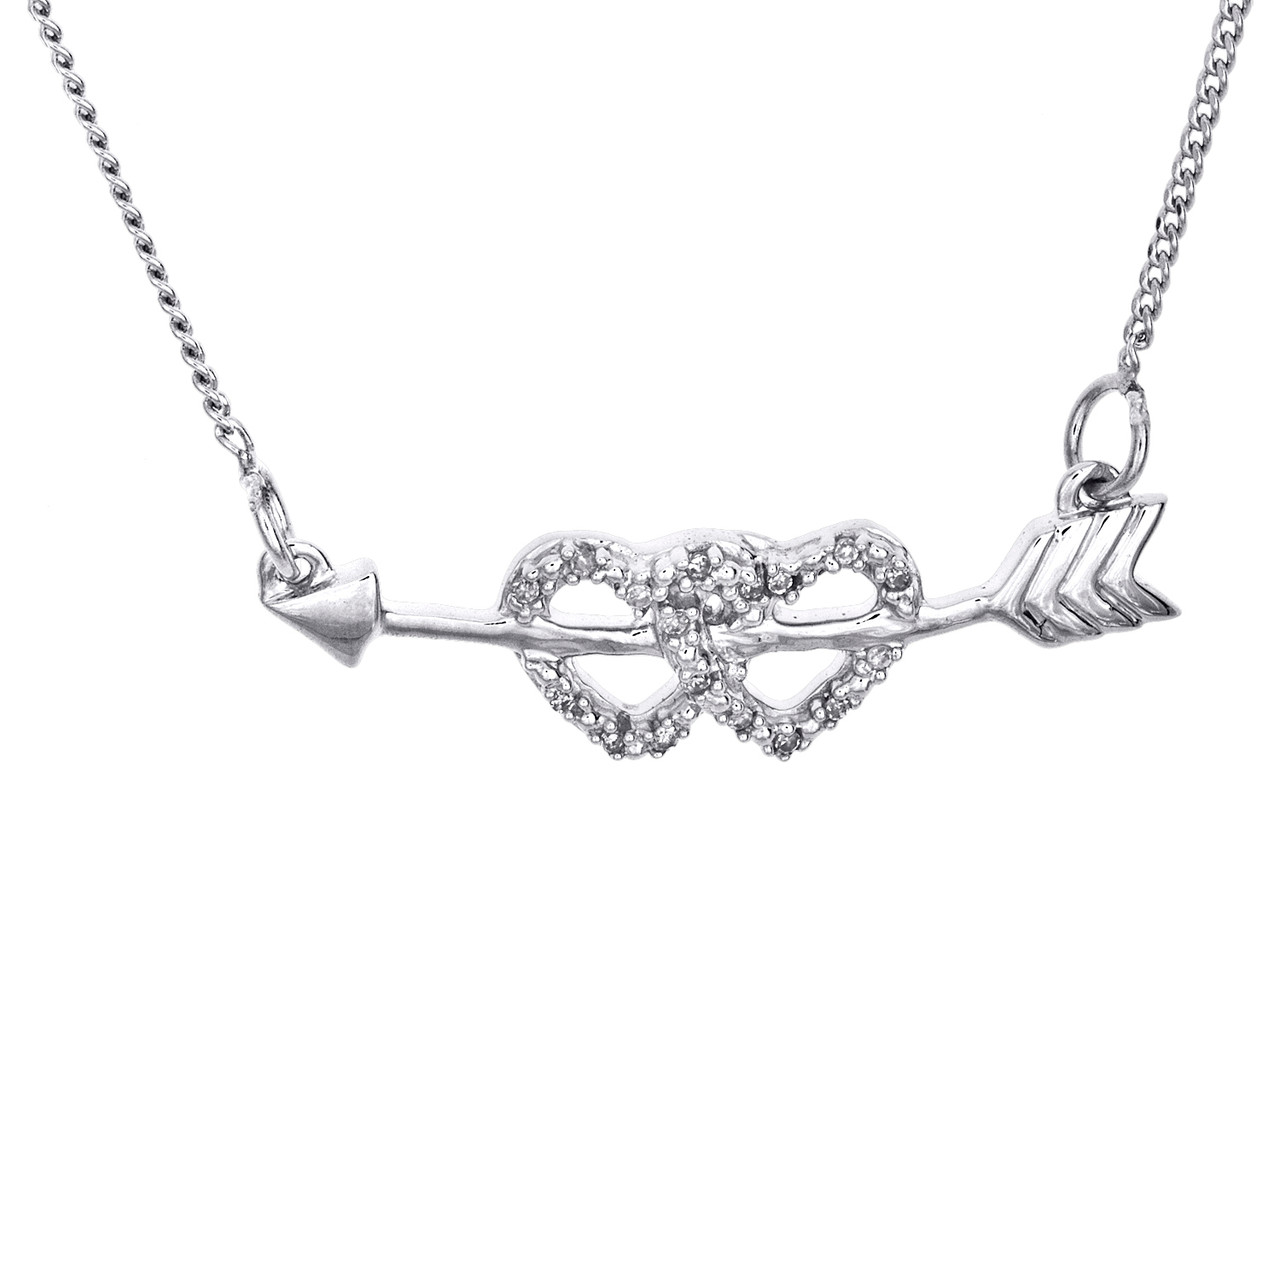 Heart /& Arrow Necklace with Diamonds in Sterling Silver